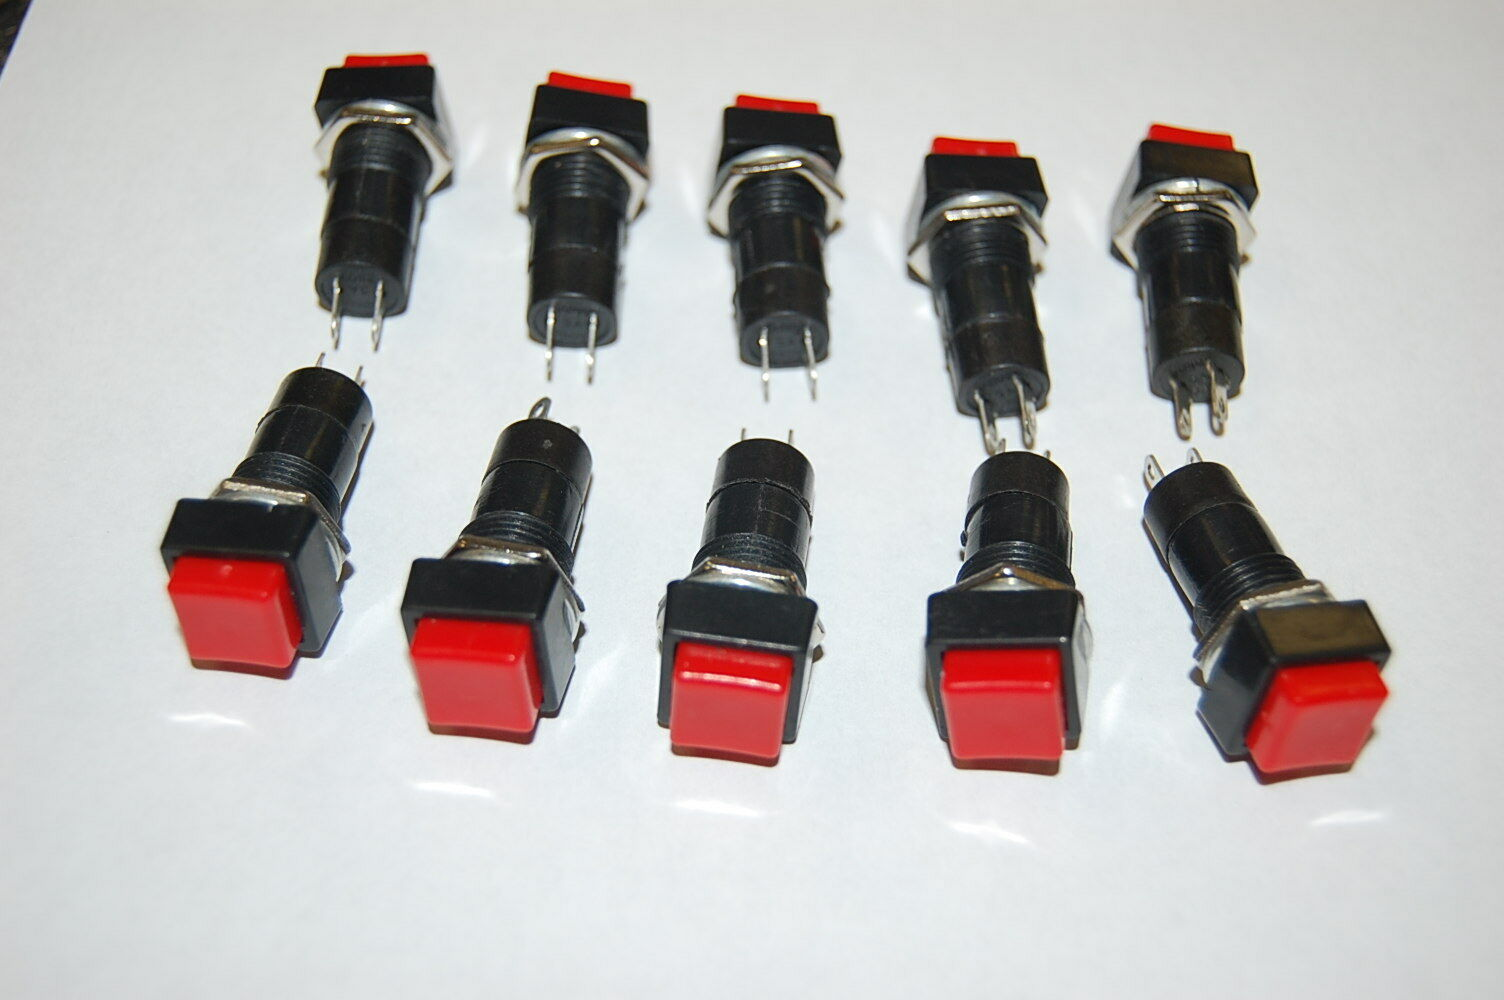 Spst Momentary Red Square Push Button Switch Off On 250v 3a 10 Pcs 12v Selflock Led Light Latching 1 Of 6only 0 Available